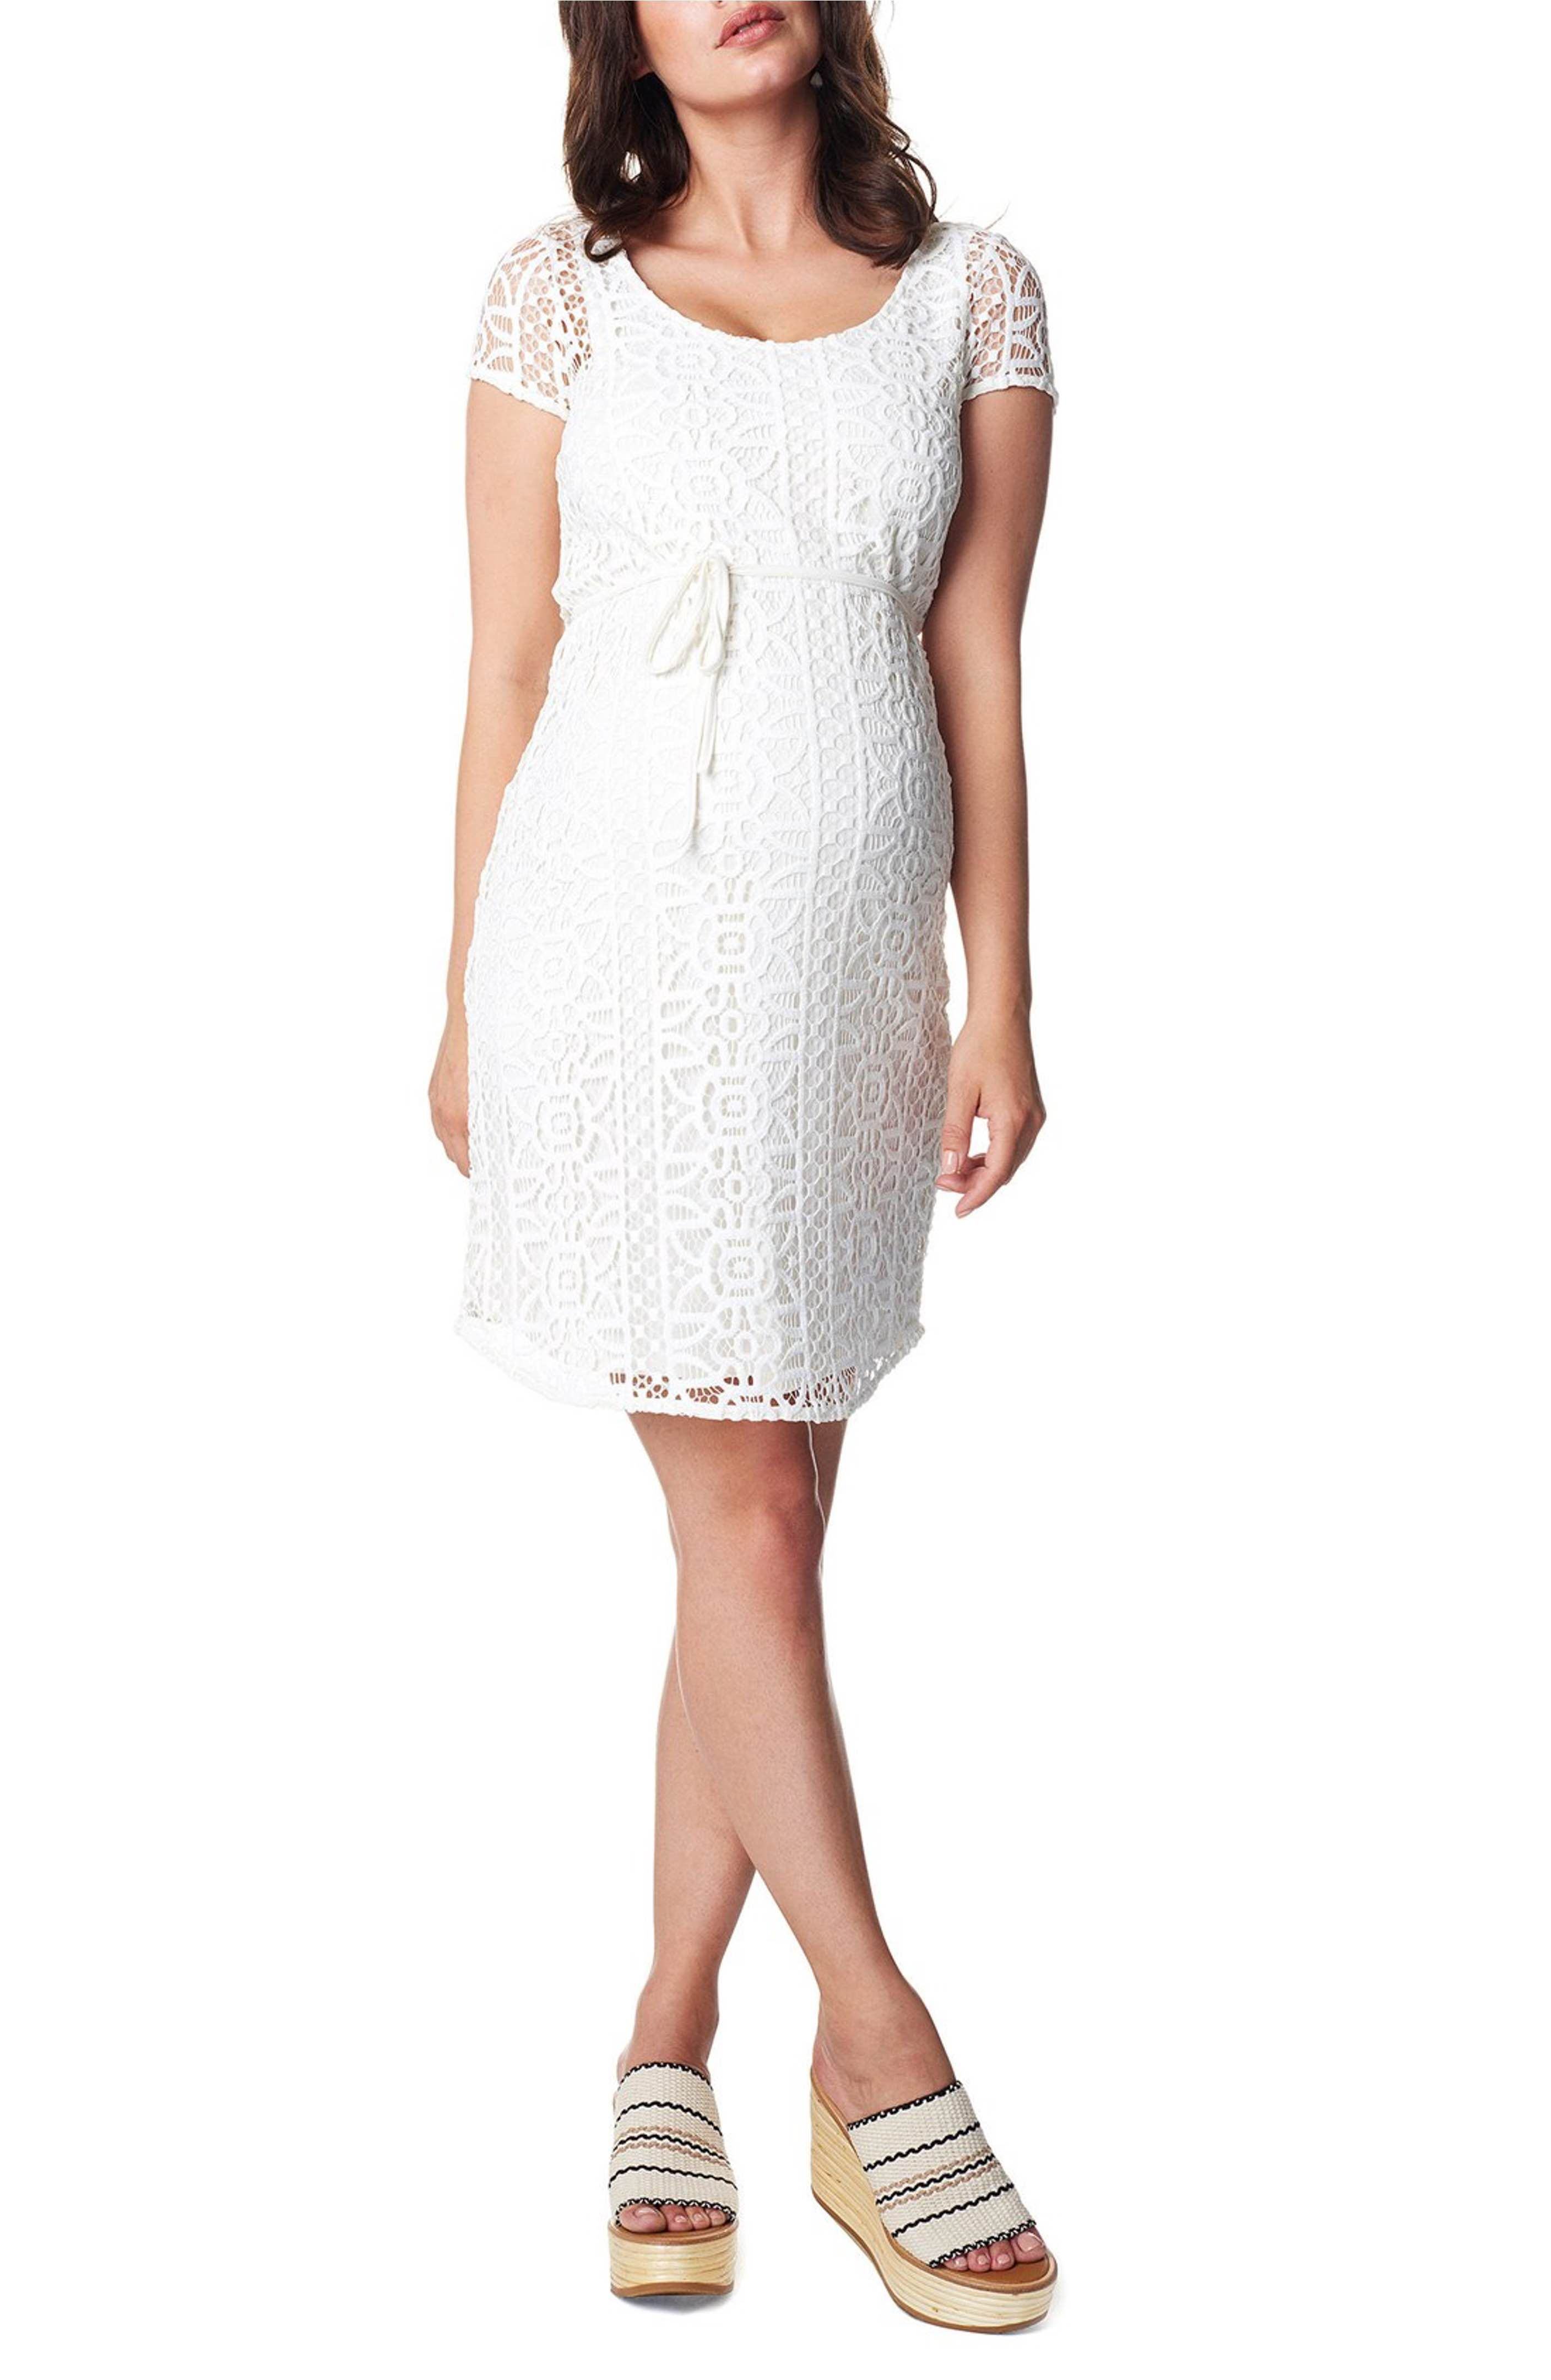 f346592f076a0 Main Image - Noppies Elise Woven Lace Maternity Dress   Maternity ...